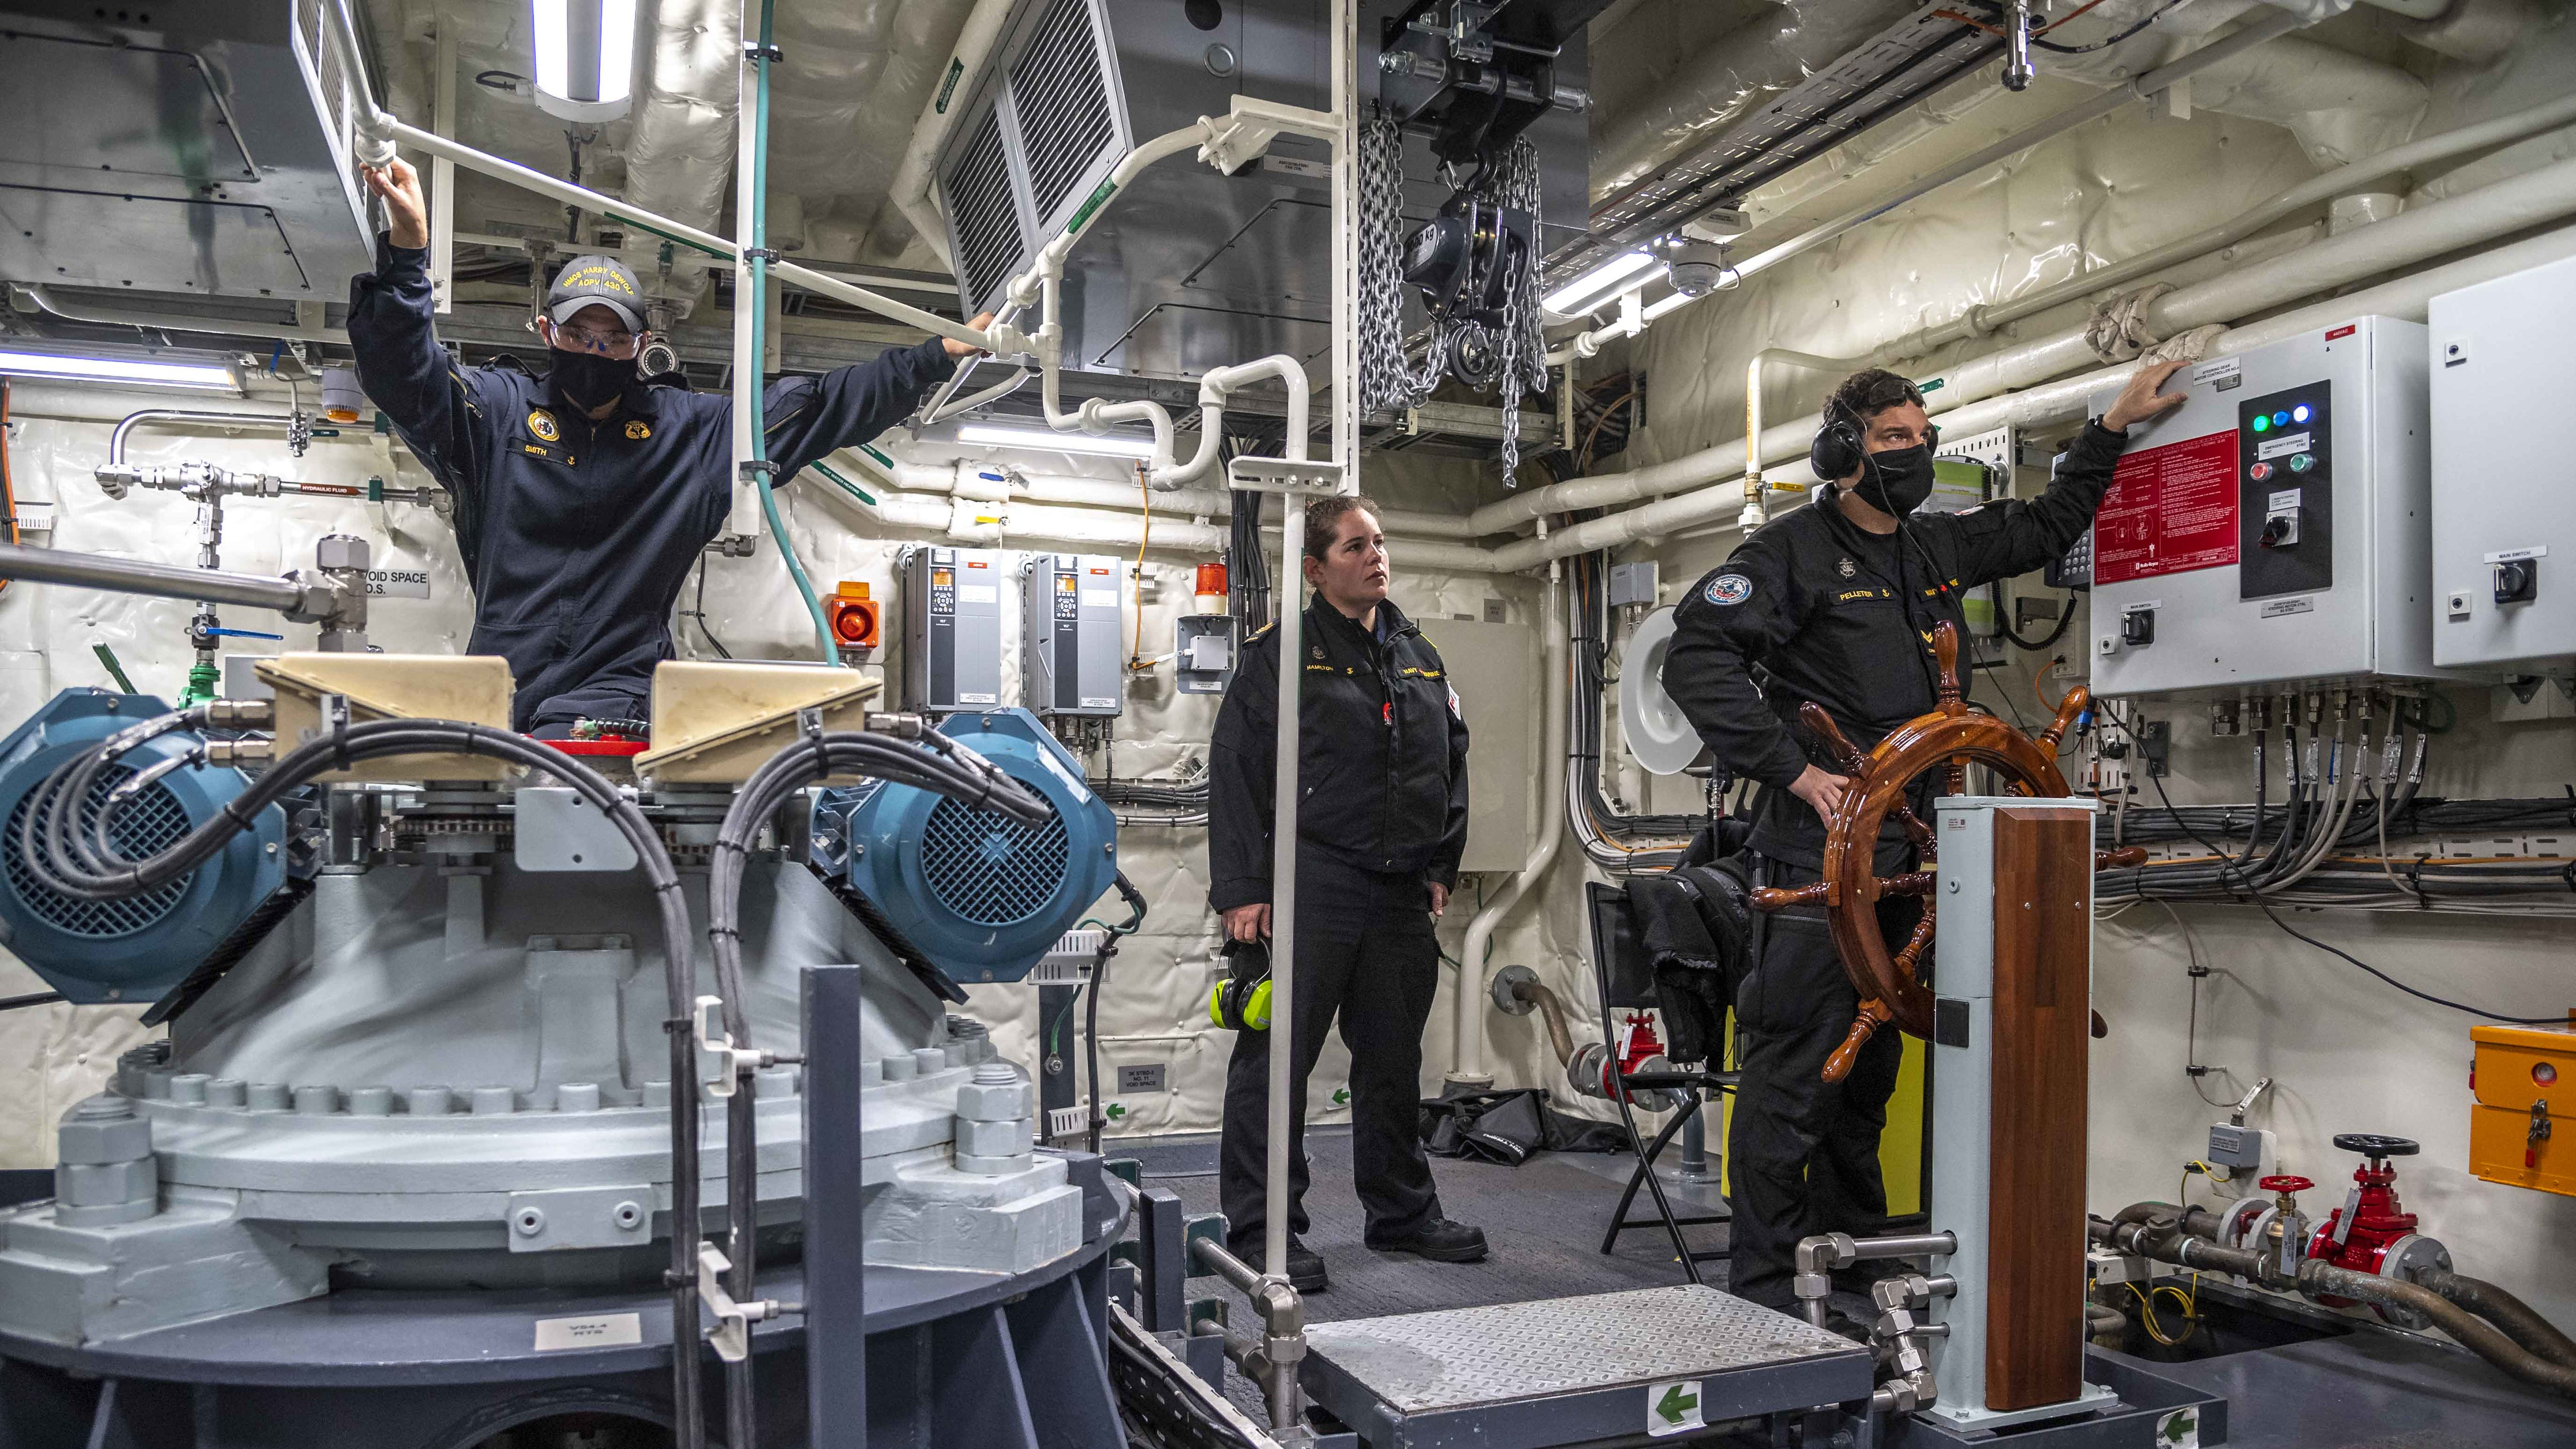 Sailor 1st Class (S1) Smith, Petty Officer 2nd Class Hamilton and S1 Pelletier conduct an emergency steering drill aboard HMCS Harry DeWolf on November 13.